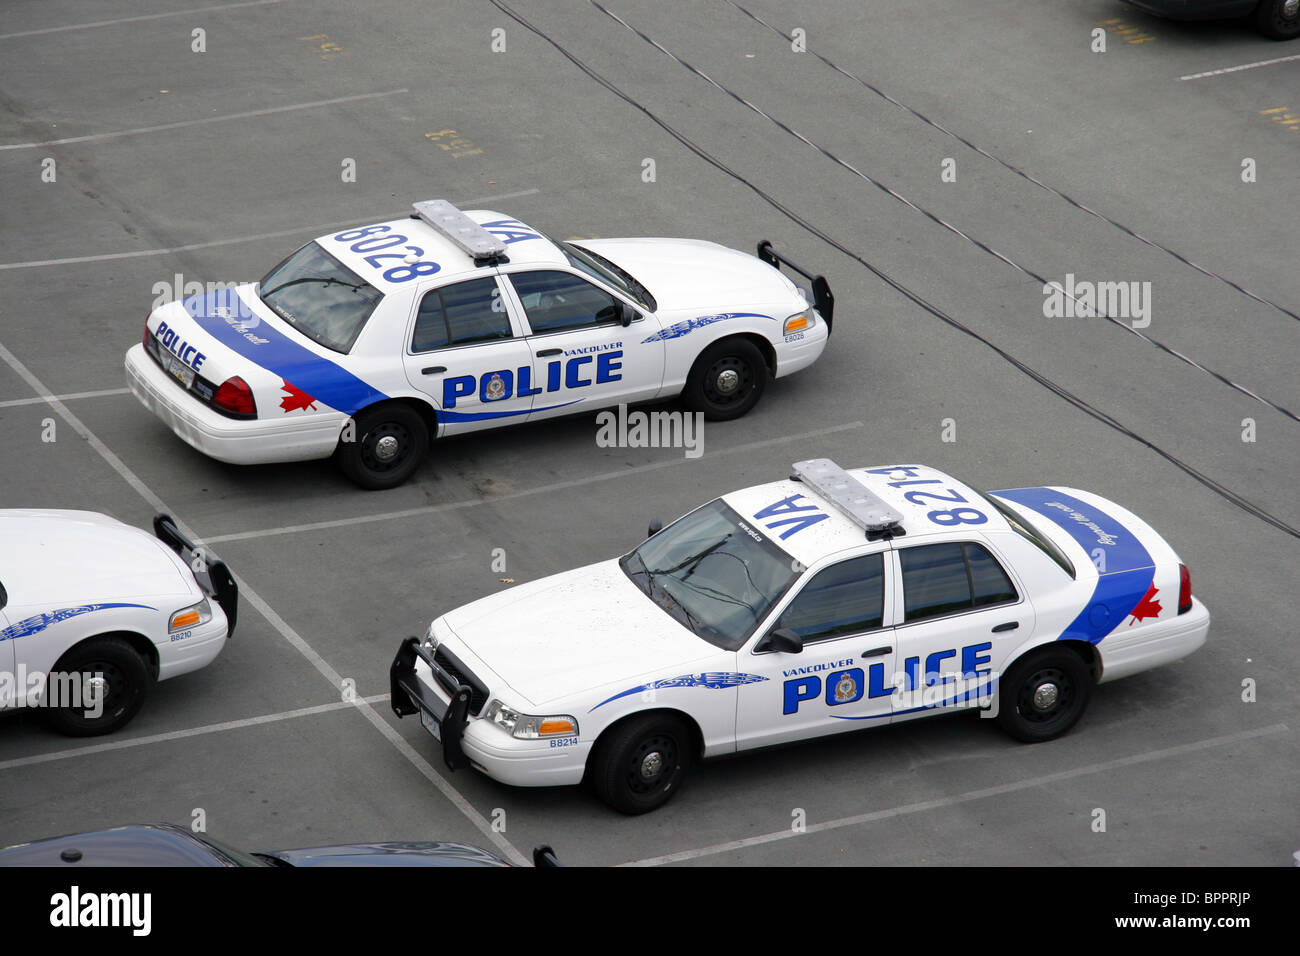 Vancouver police department vehicles, Vancouver, British Columbia, Canada - Stock Image